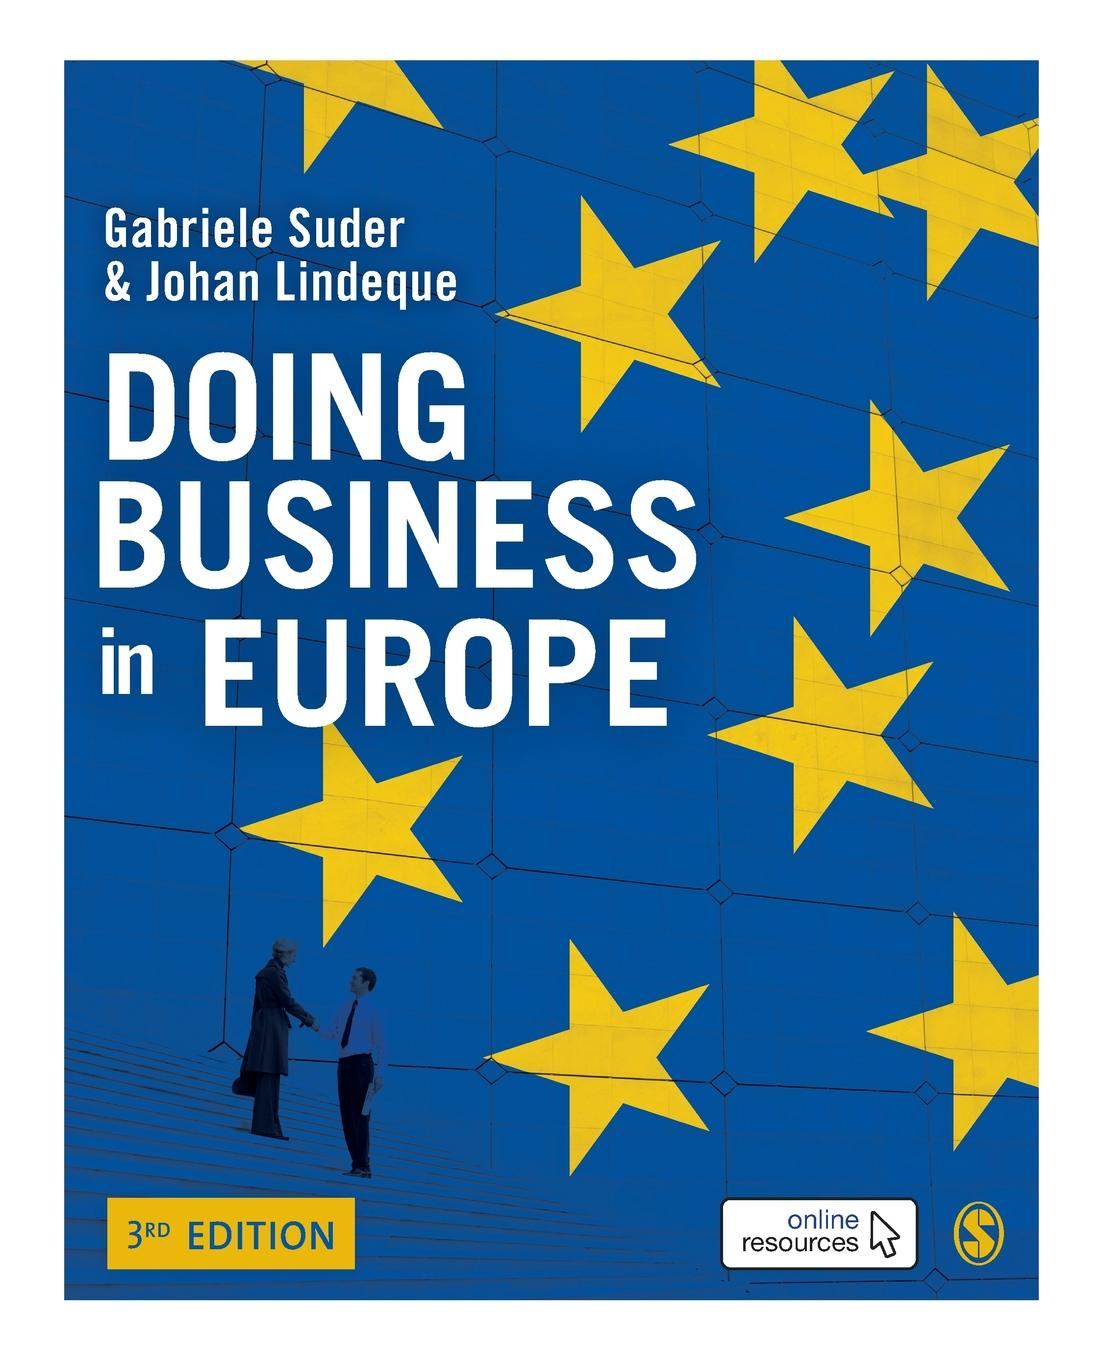 Gabriele Suder Doing Business in Europe shoes 8 5 in europe